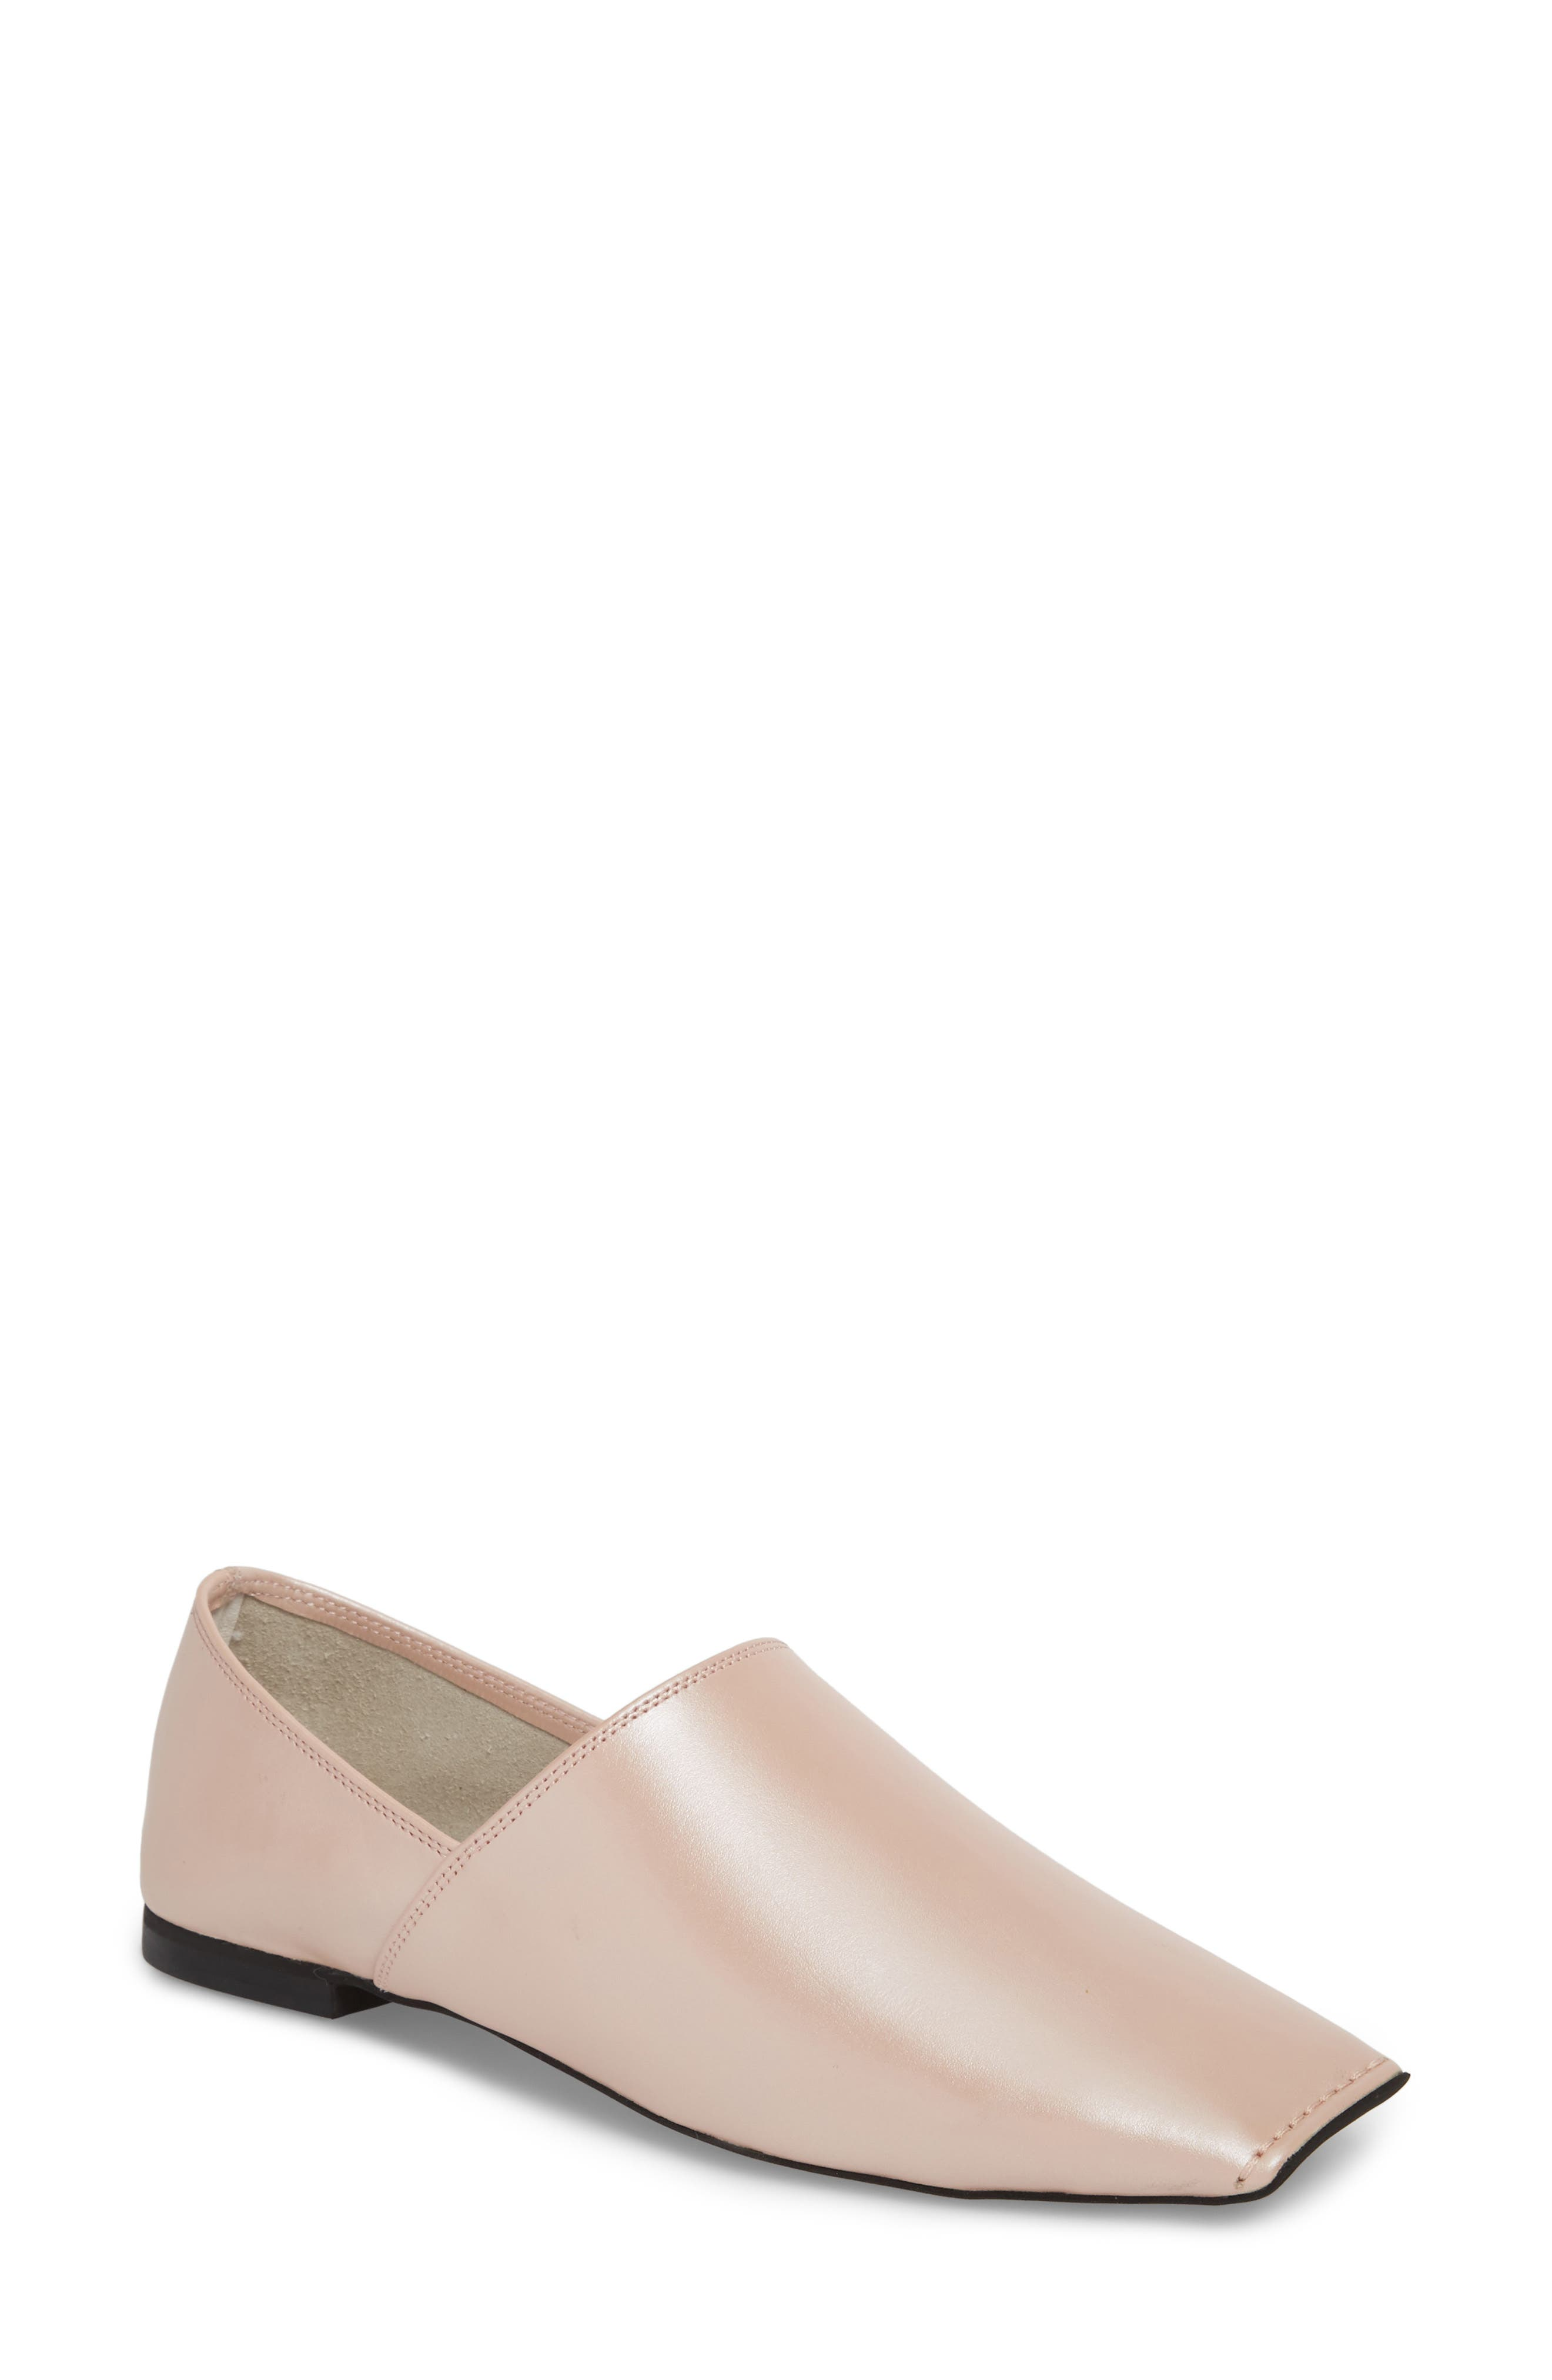 Lanvale Blunted Toe Flat,                         Main,                         color, PINK LUSTER